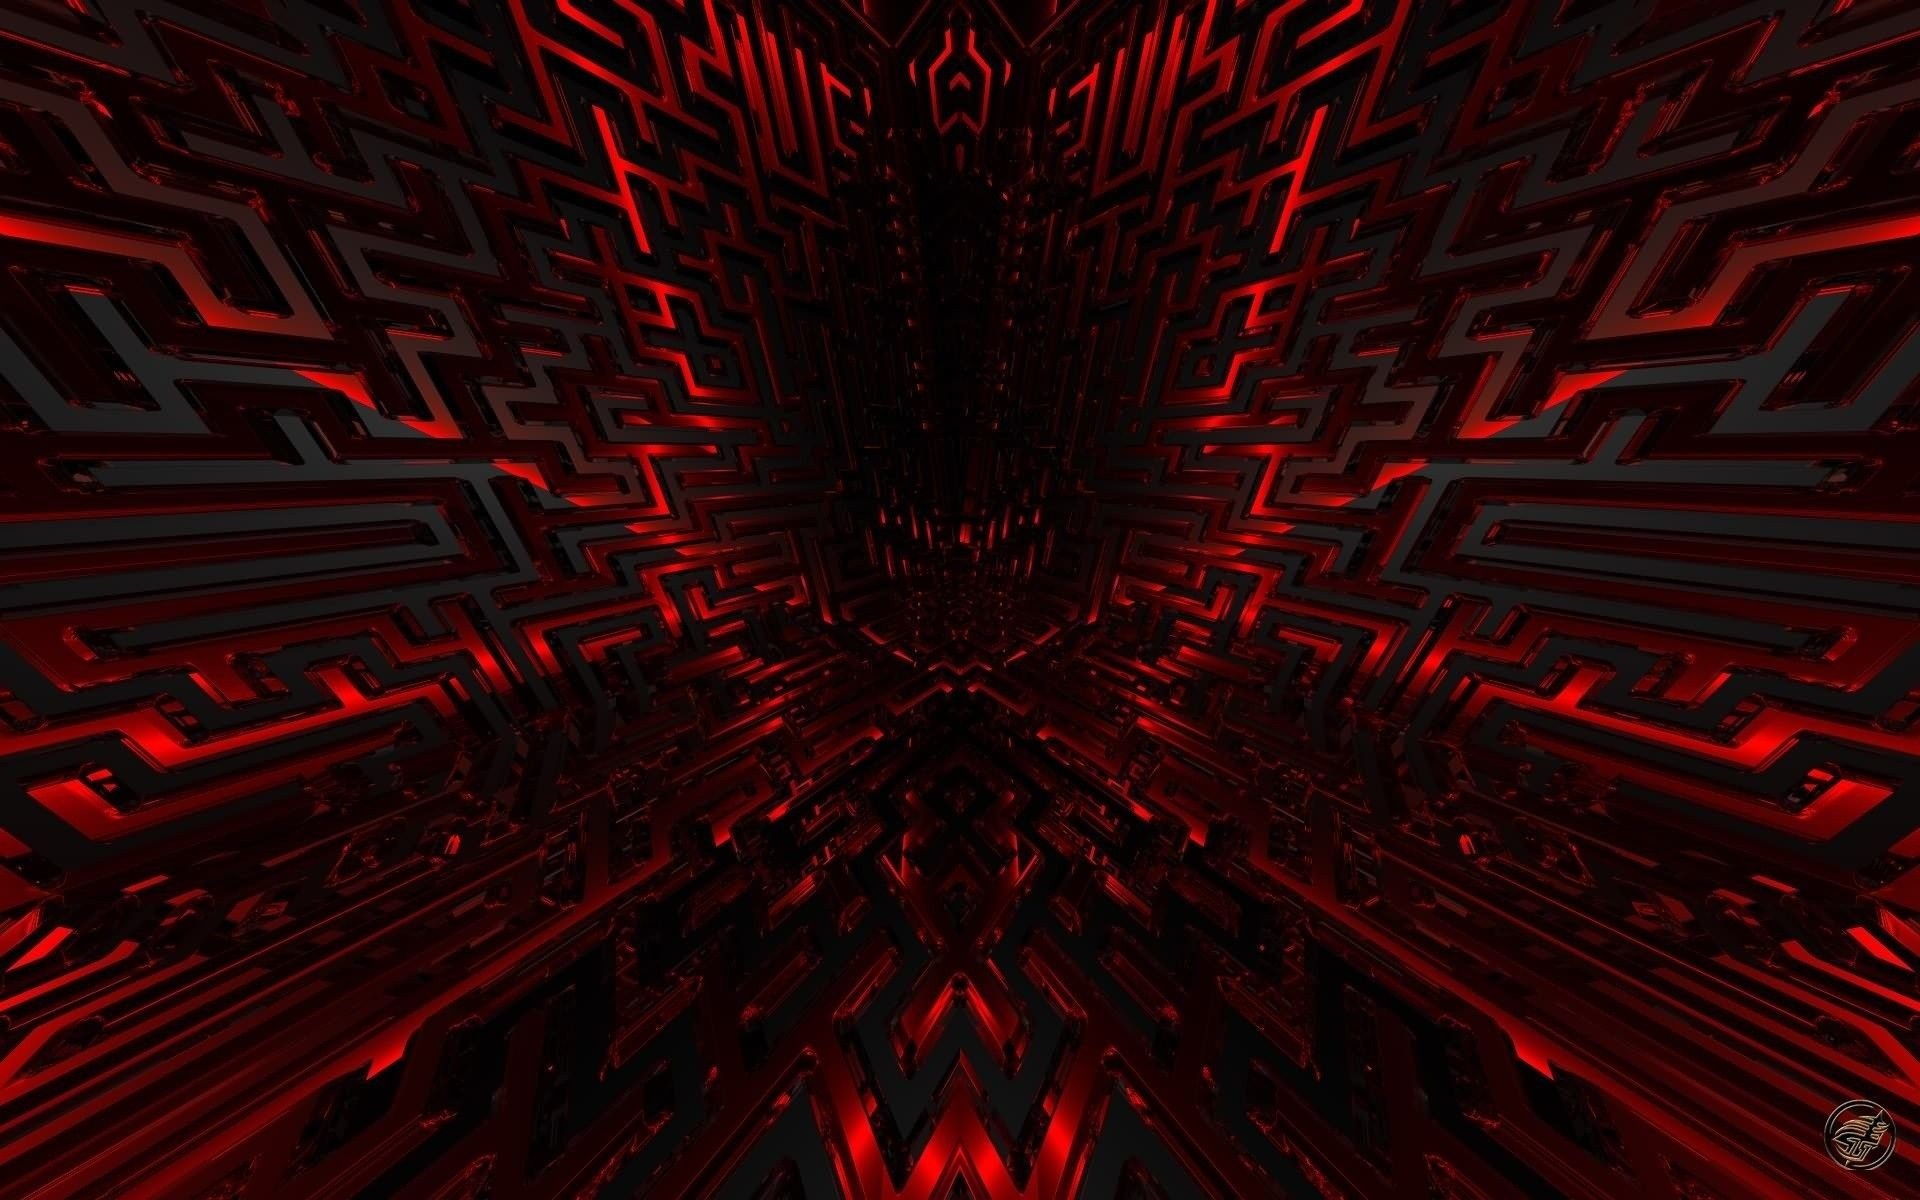 1920x1200 Black And Red Hd Wallpaper Red And Black Background Red And Black Wallpaper Red Wallpaper